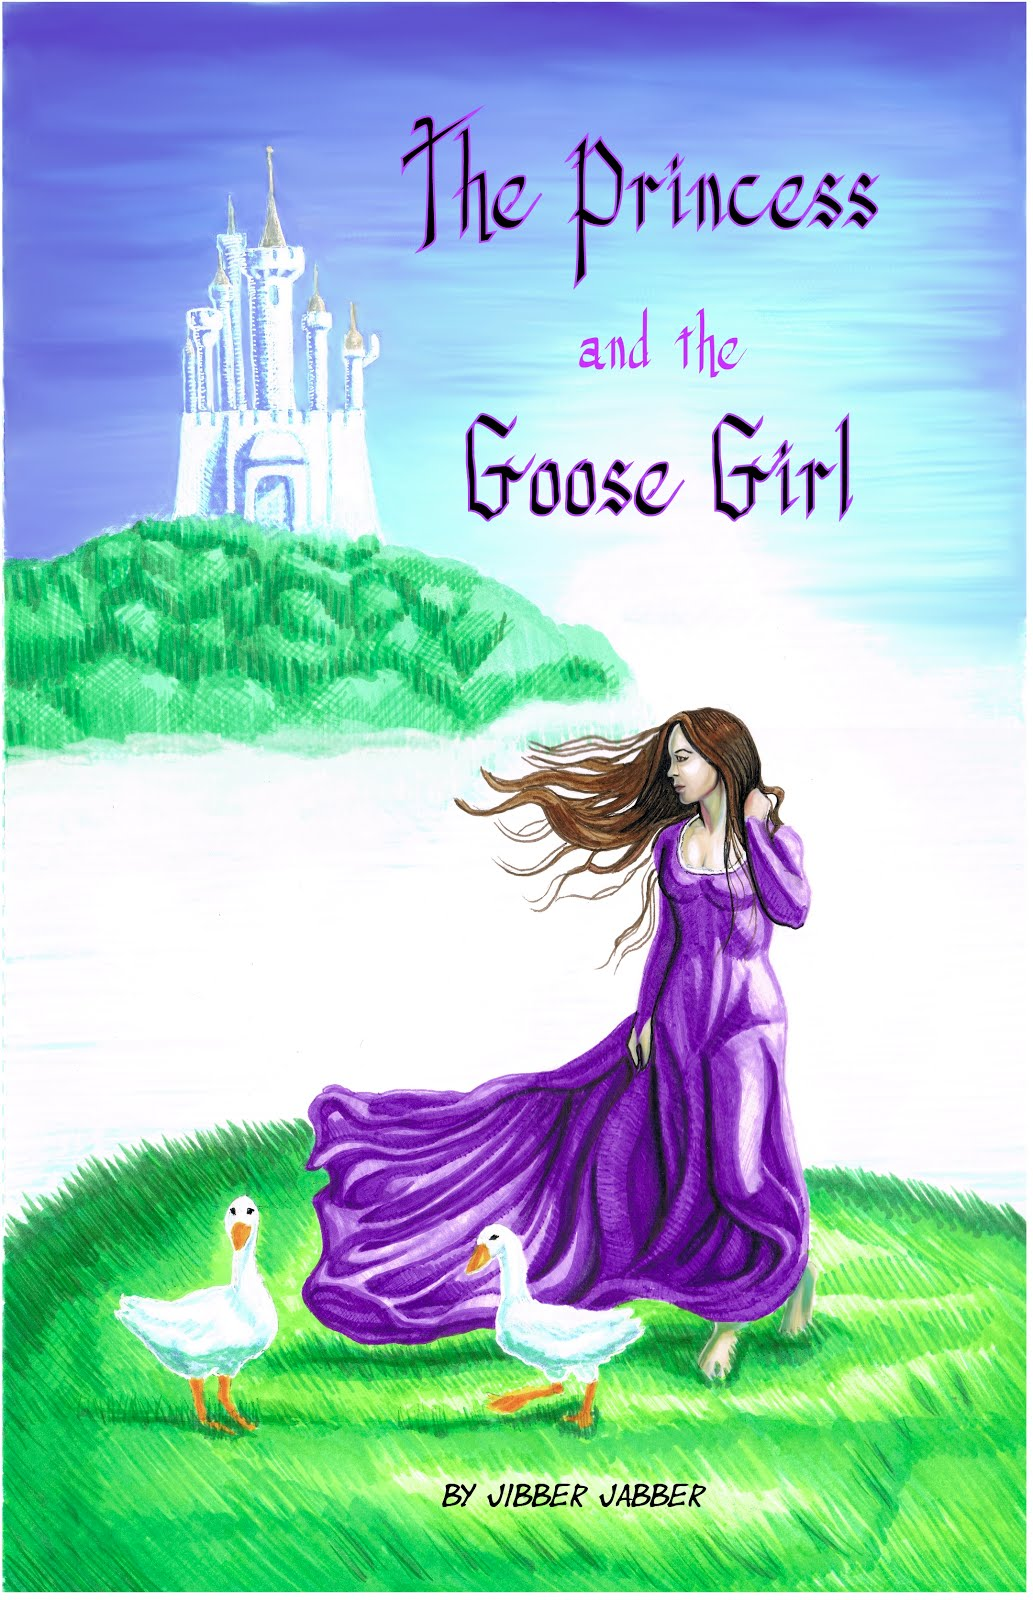 The Princess and the Goose Girl